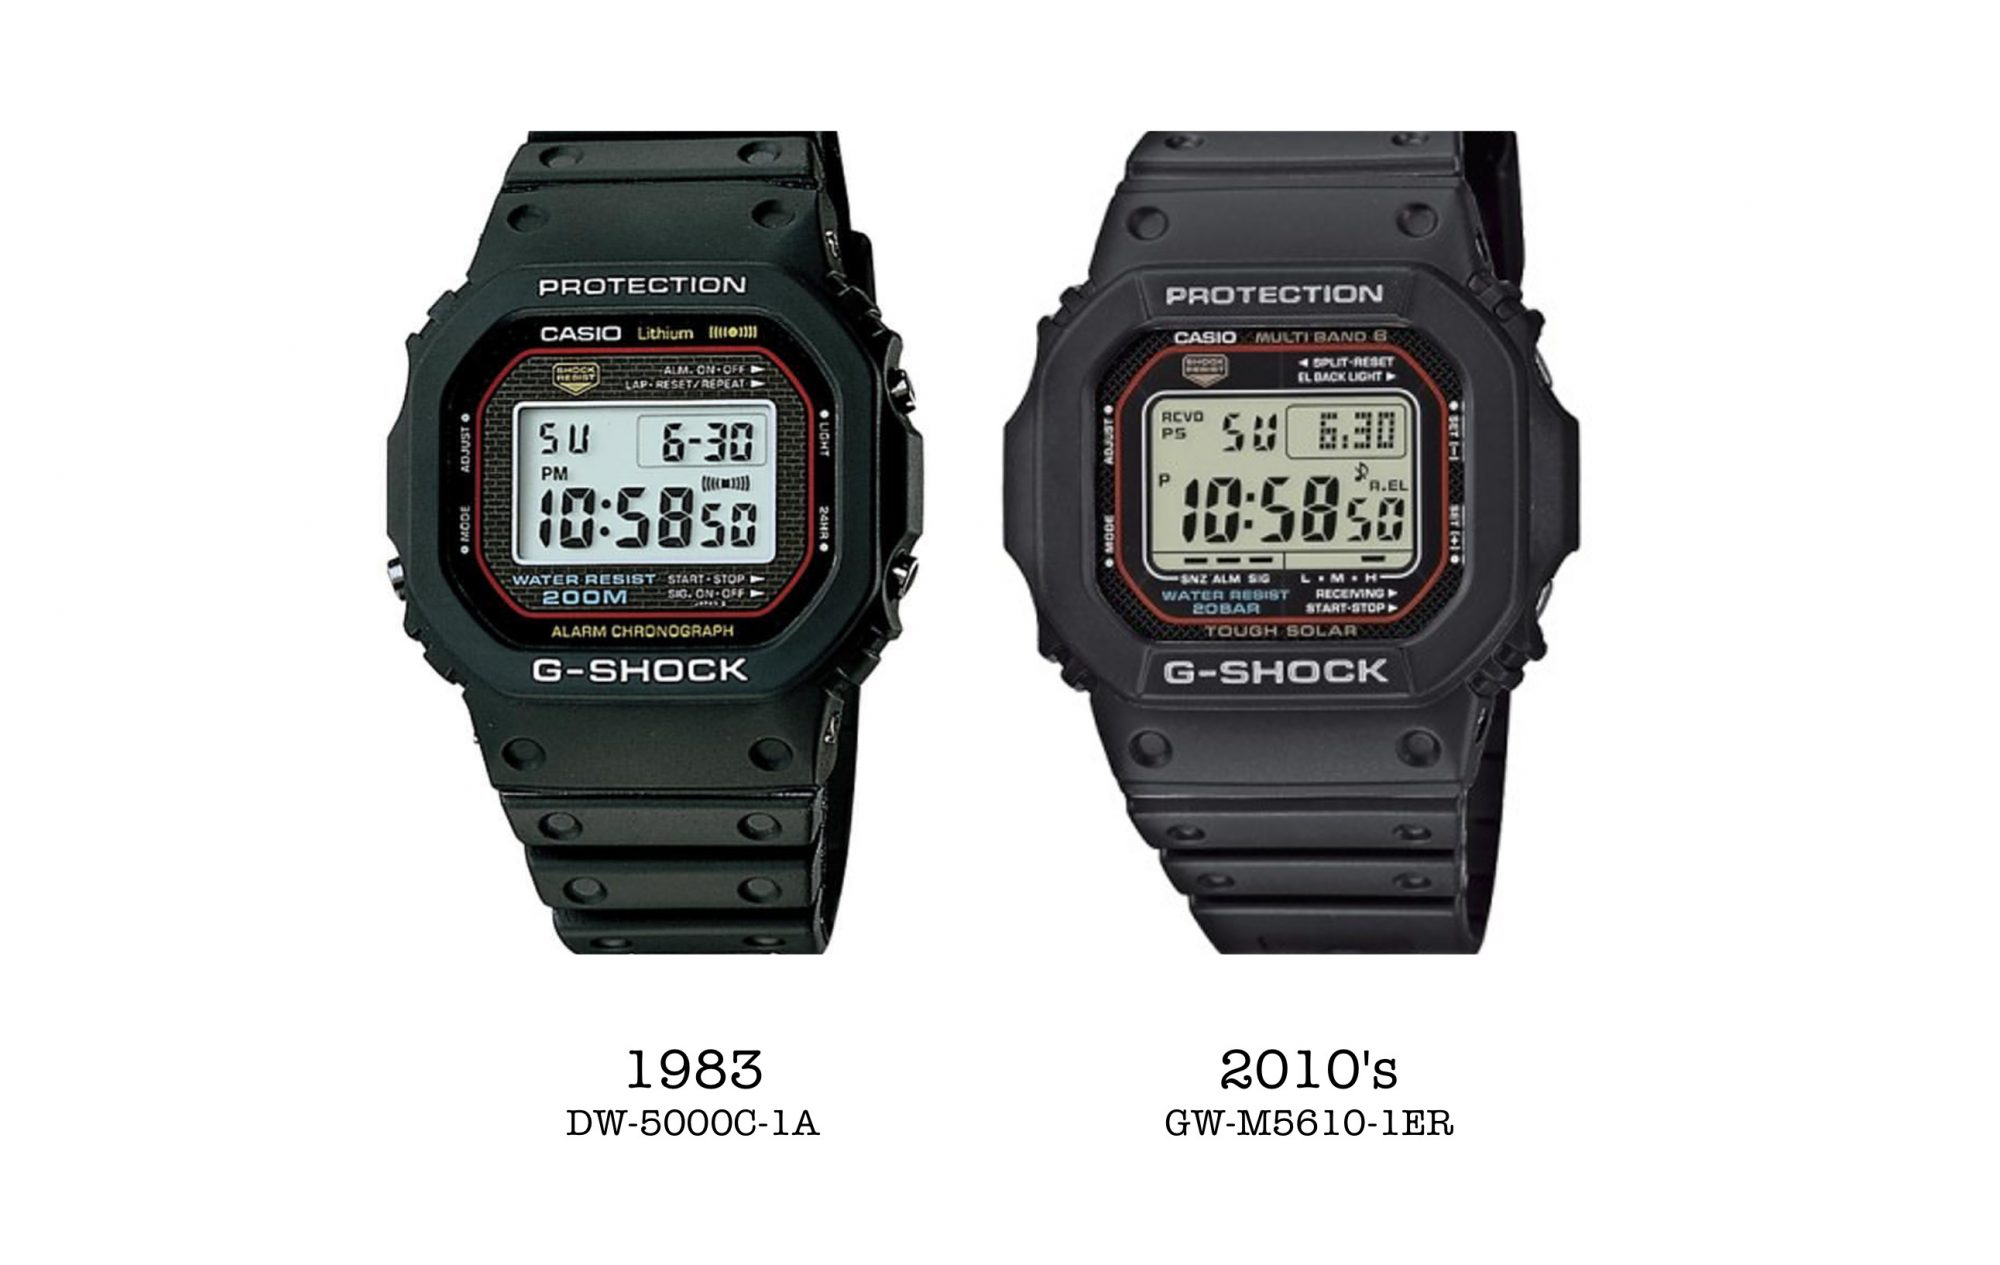 Differences entre la g-shock dw-5000c-1A et la GW-M5610-1ER